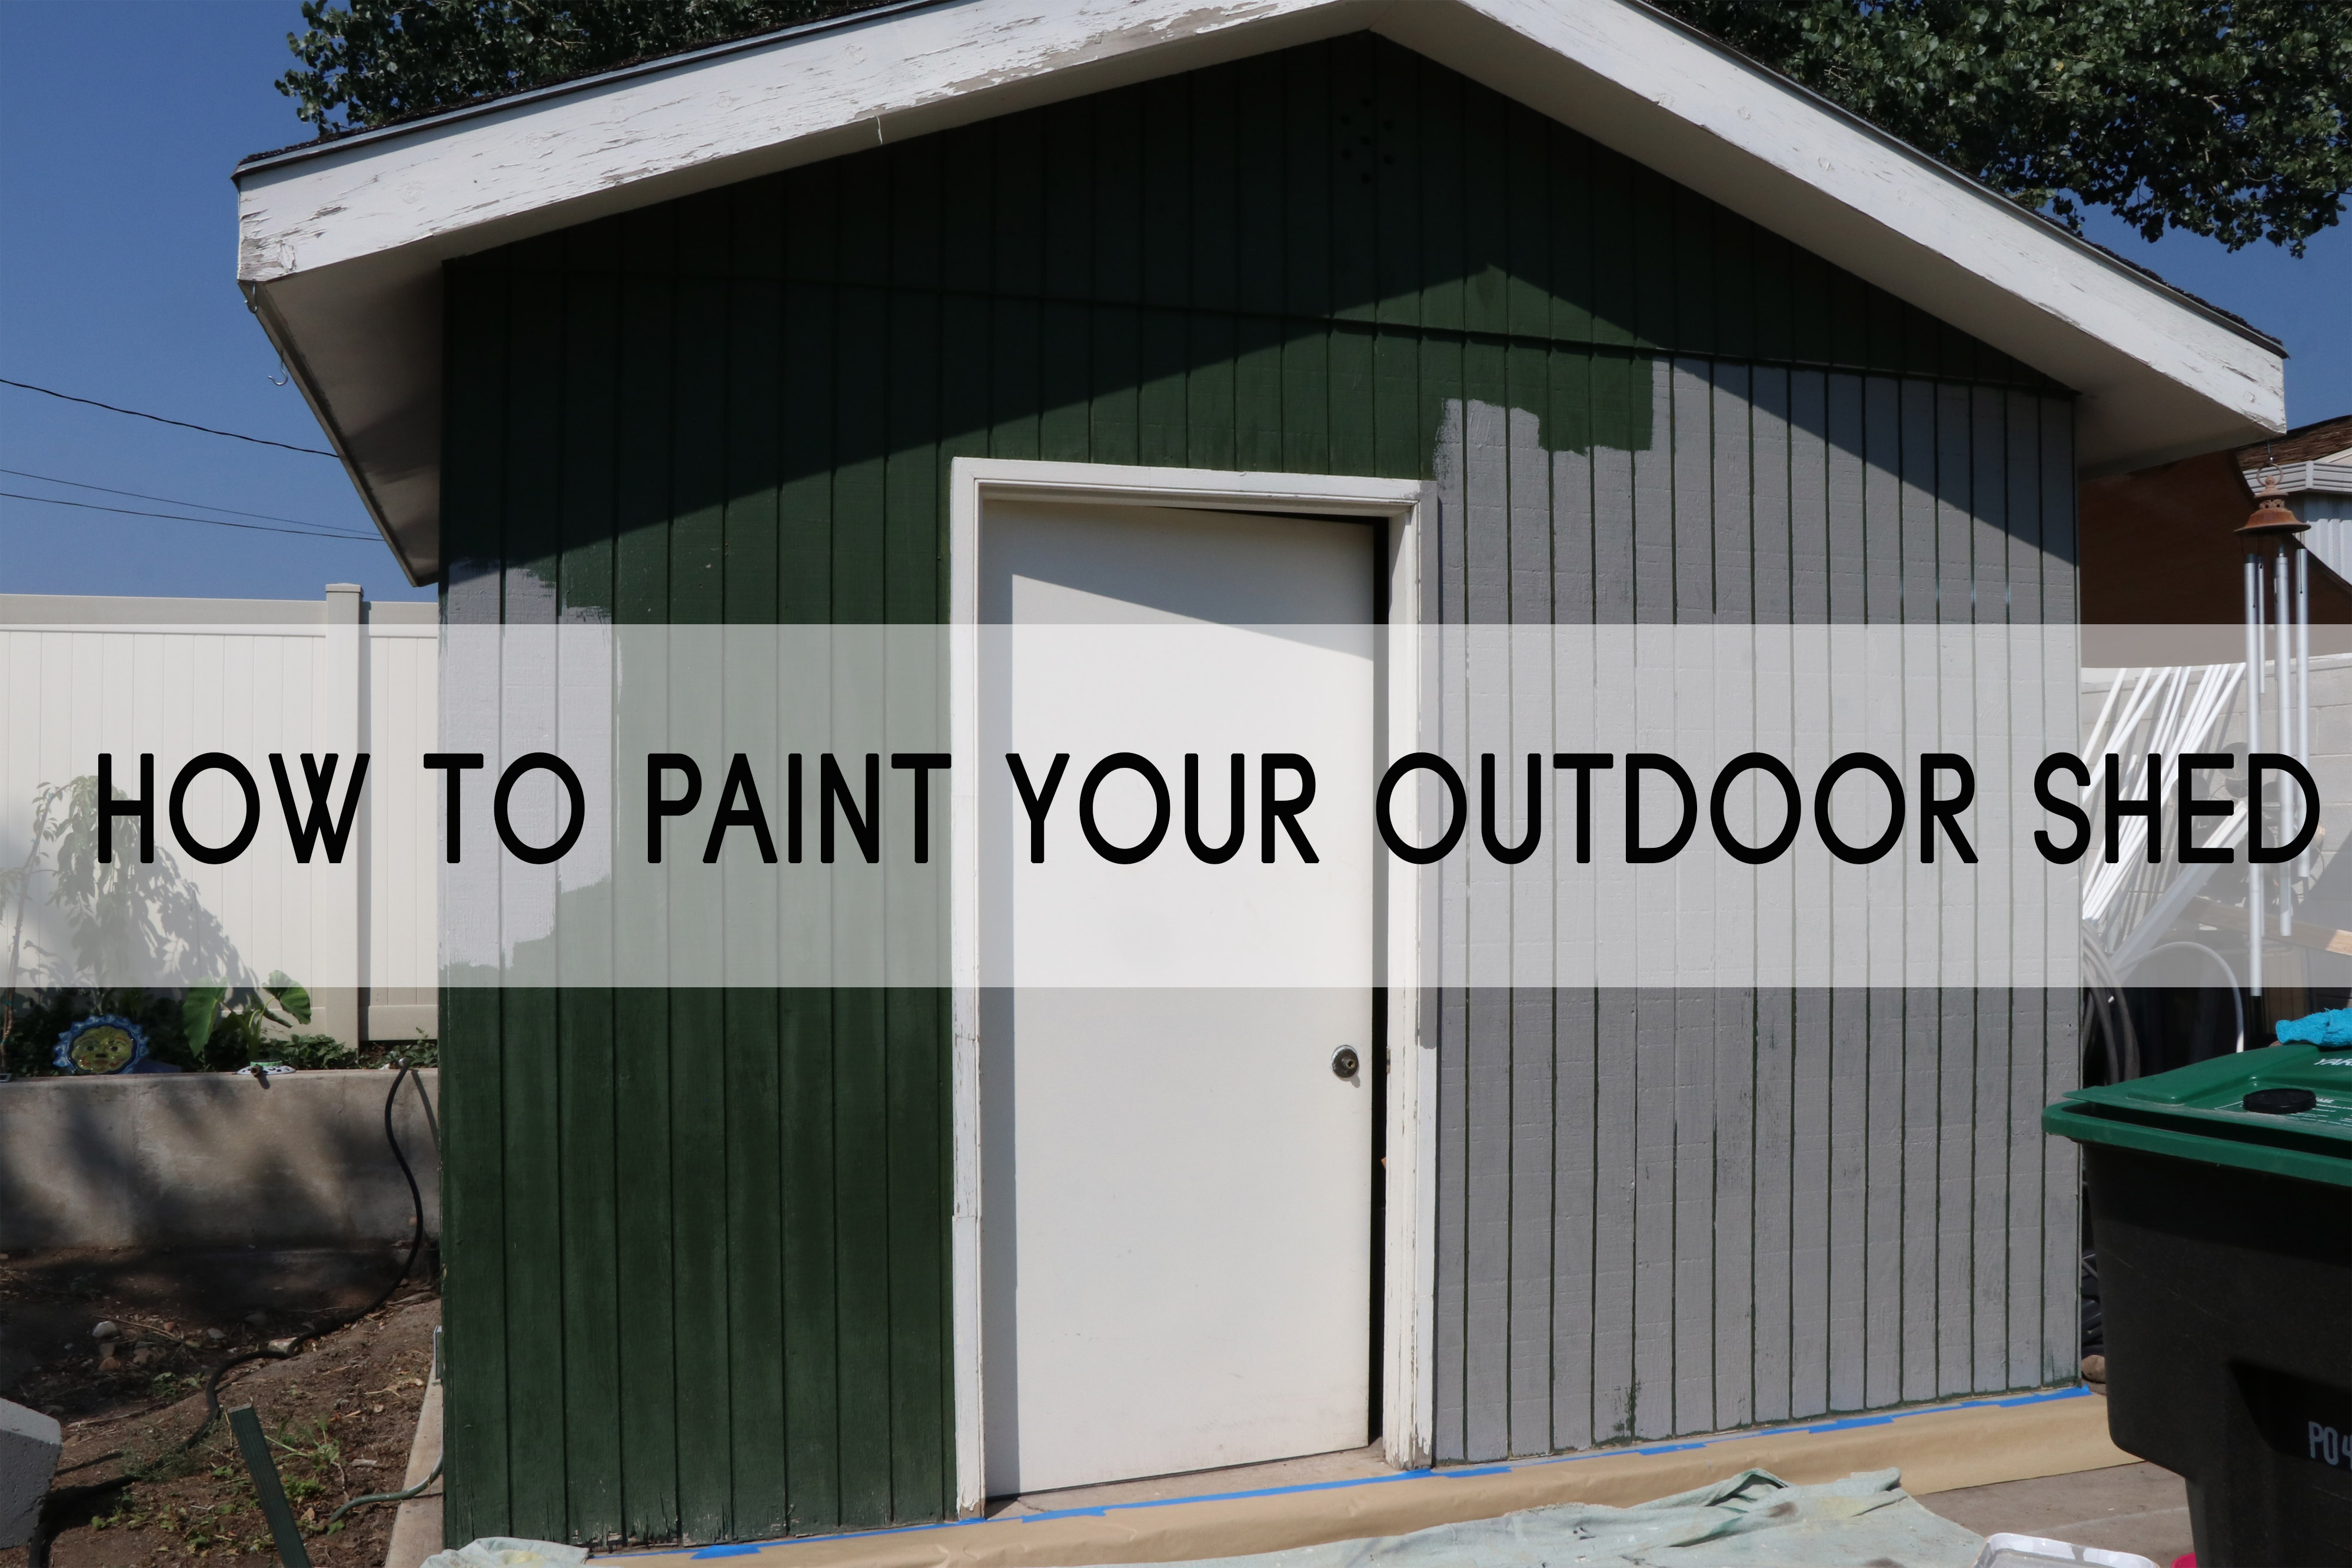 How to Paint Your Outdoor Shed